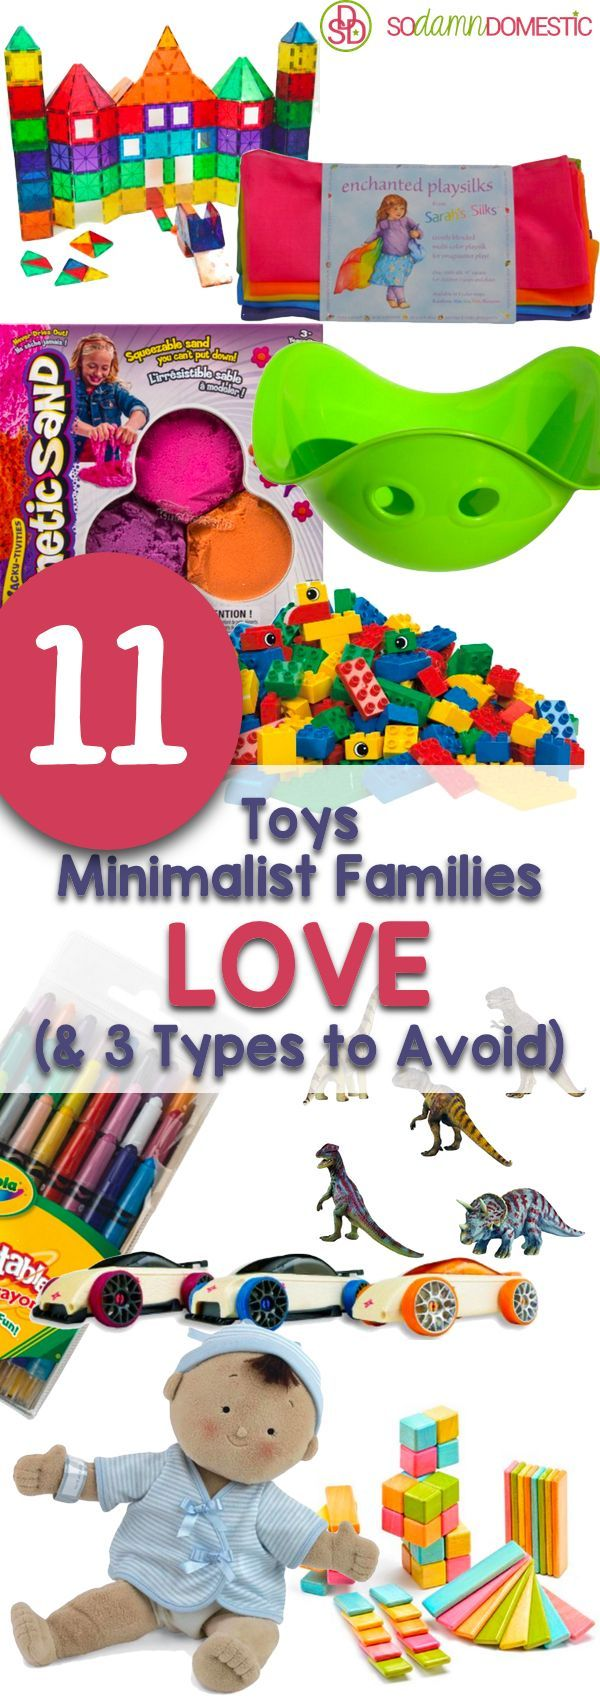 11 toys minimalist families love and 3 types to avoid